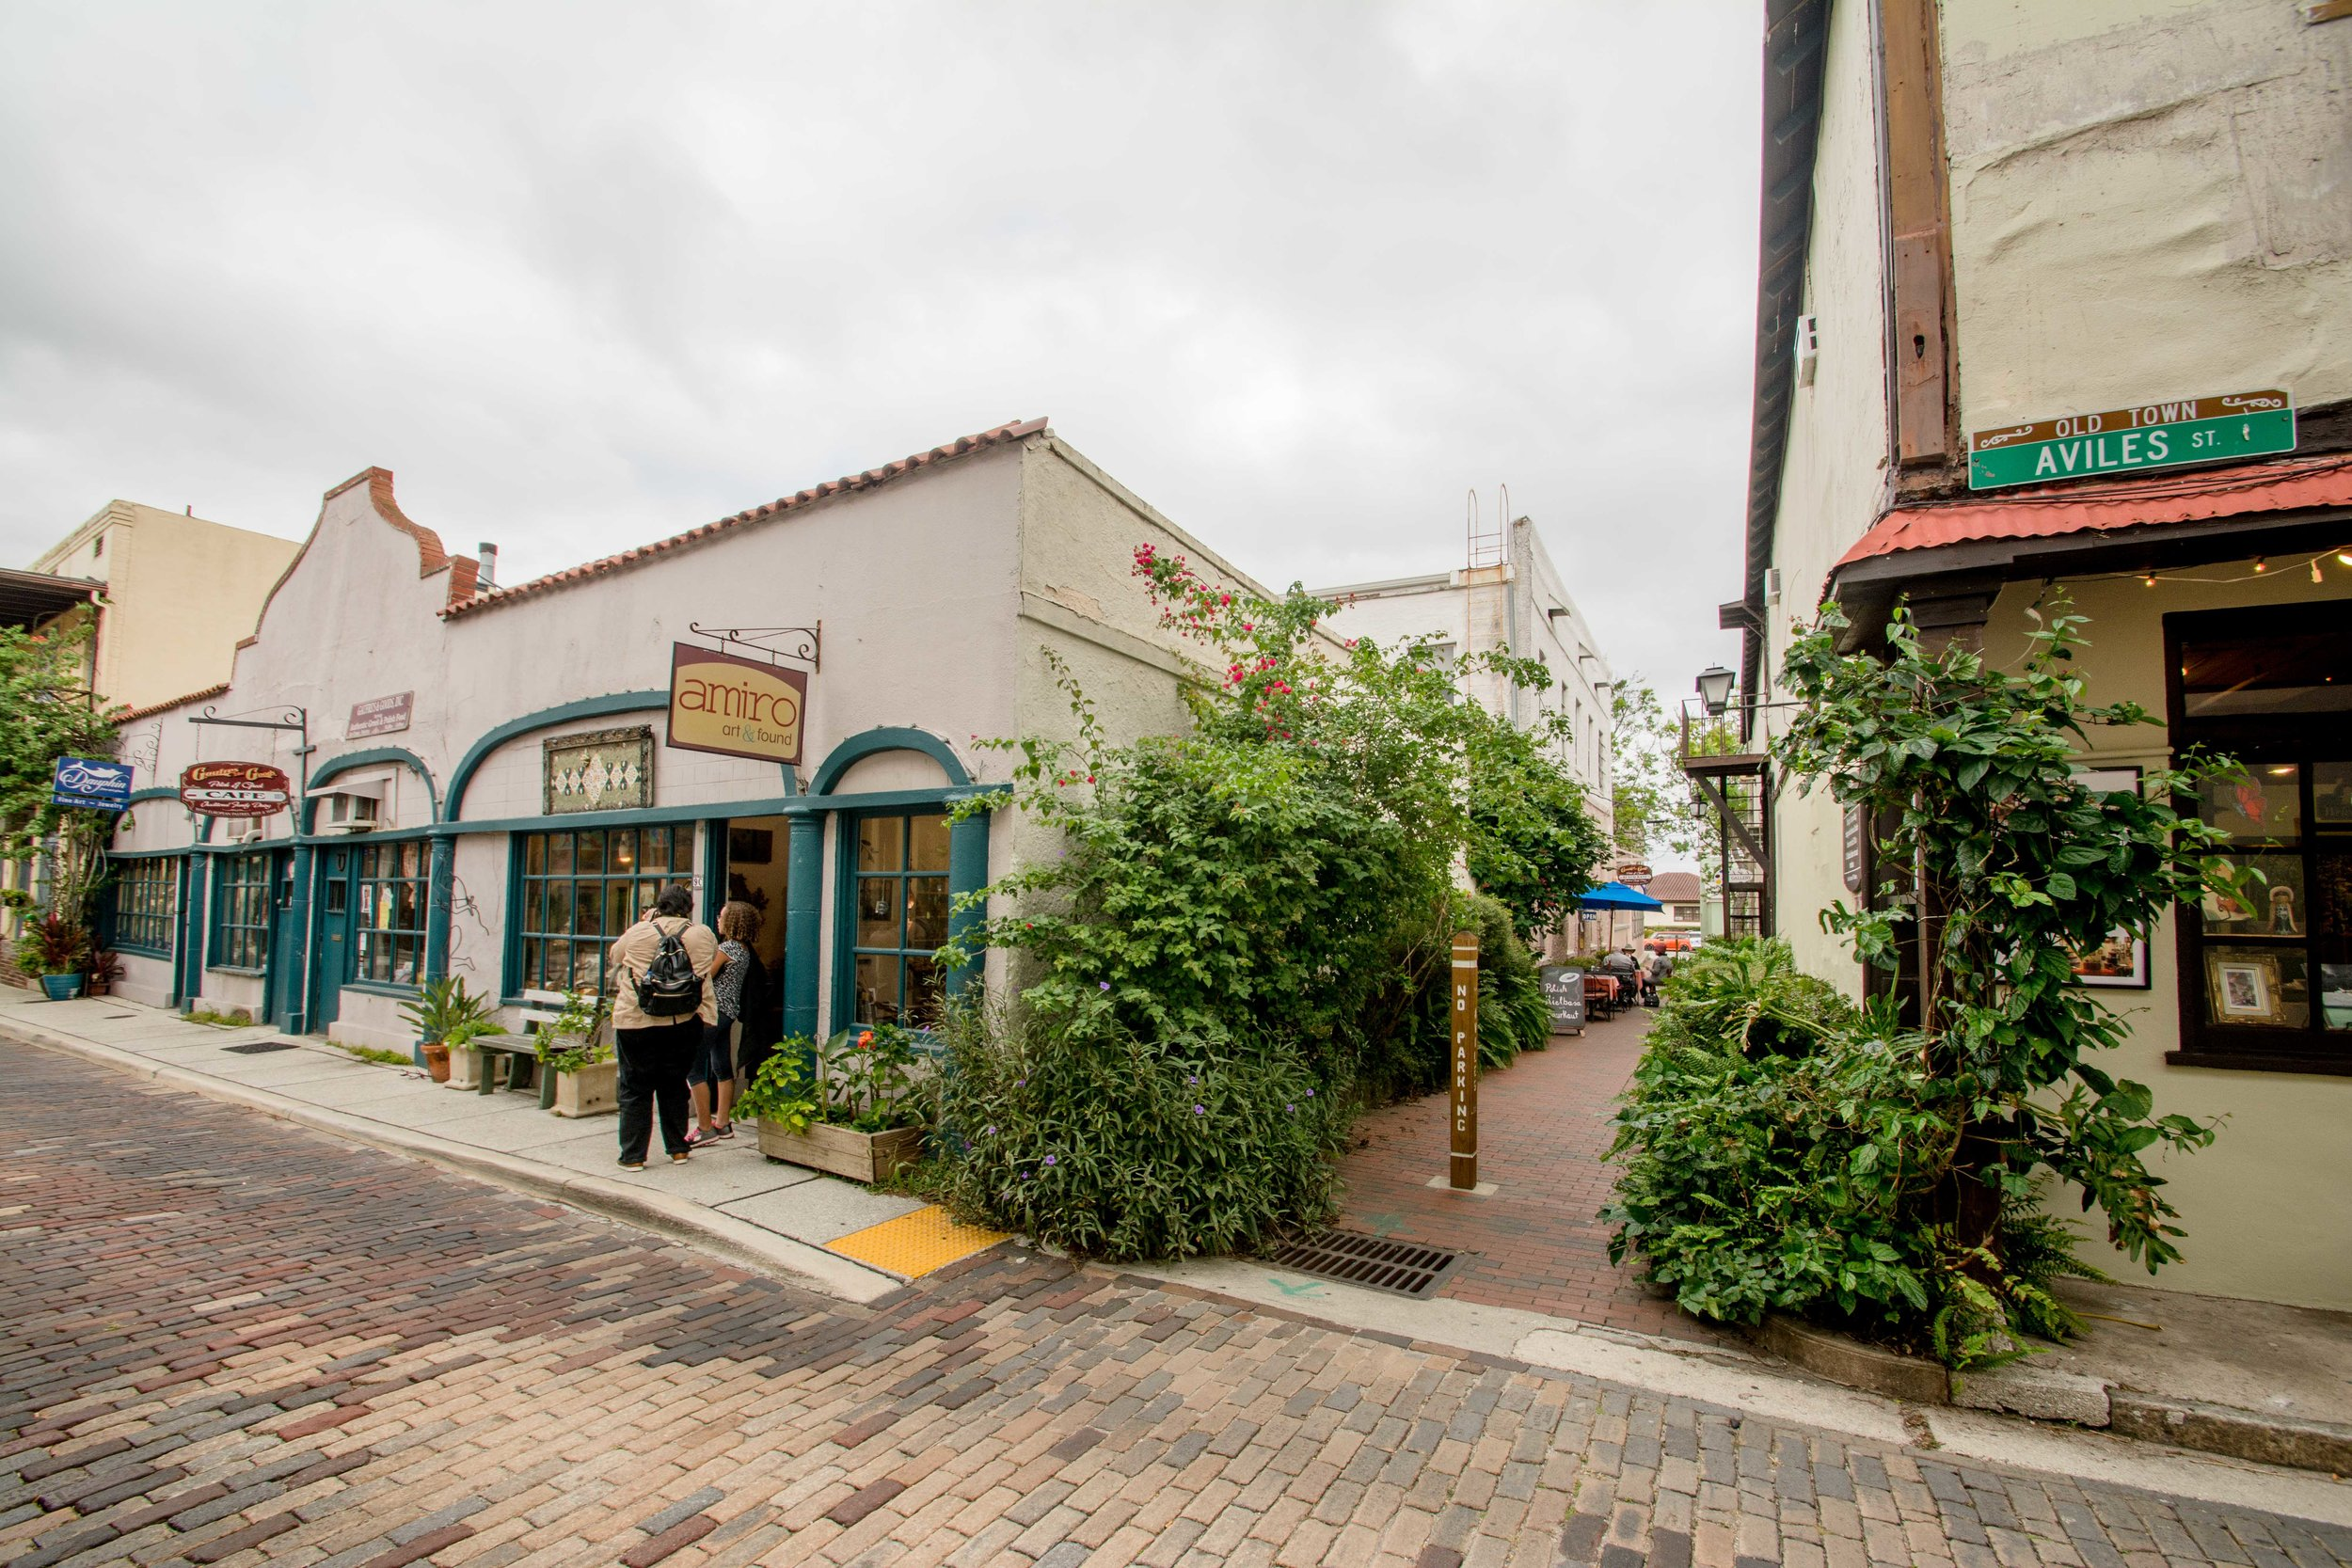 St. Augustine's narrow streets, sidewalk cafes, and European charm attract thousands of tourists annually. Read more to learn just what makes this place so attractive to people, amid a state built for cars.